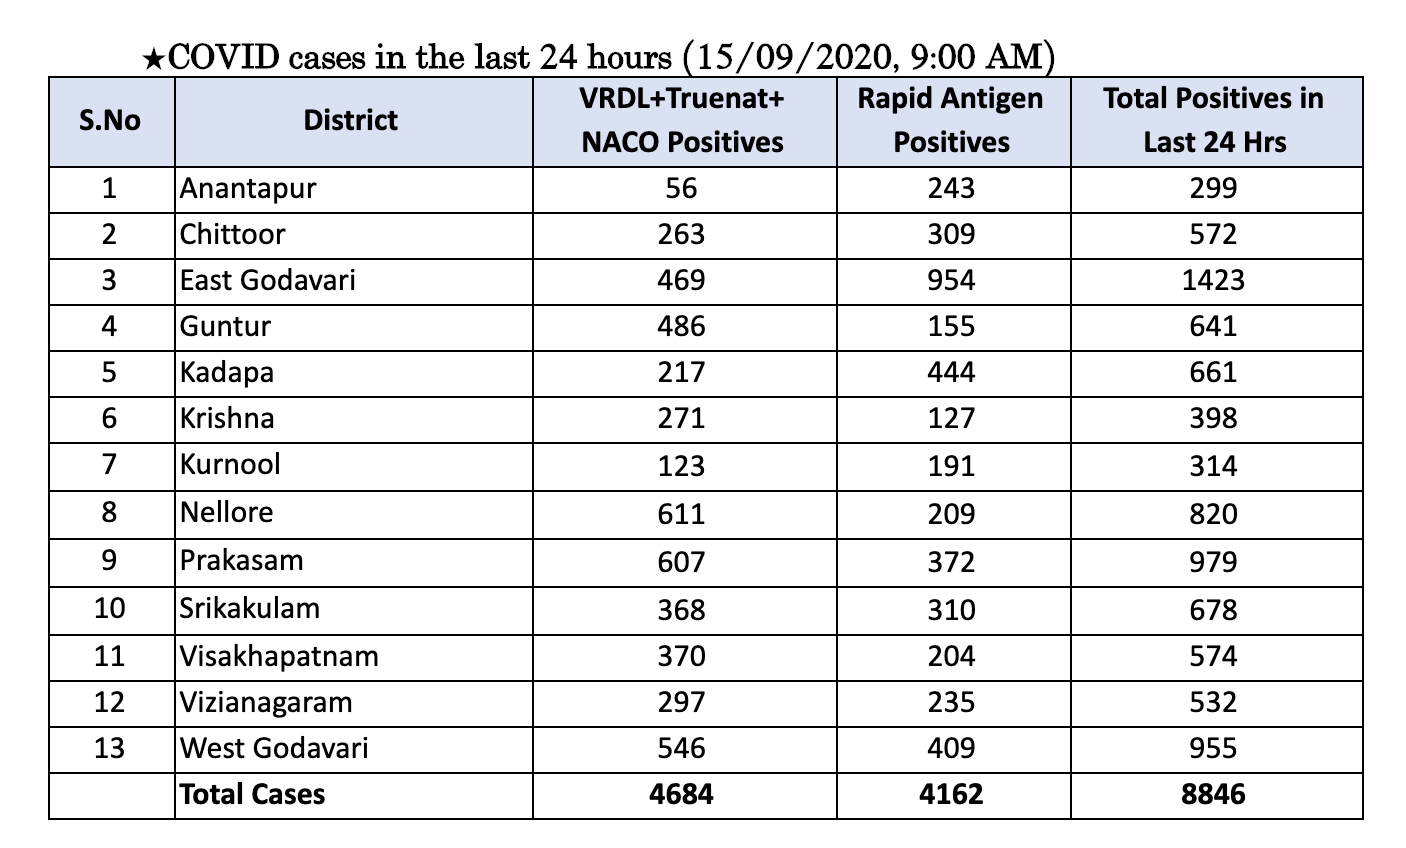 Andhra Pradesh Has 8,846 Positive Cases And The Total Positive Cases In The State Increased To 583,925 As Of 15th September 10 AM